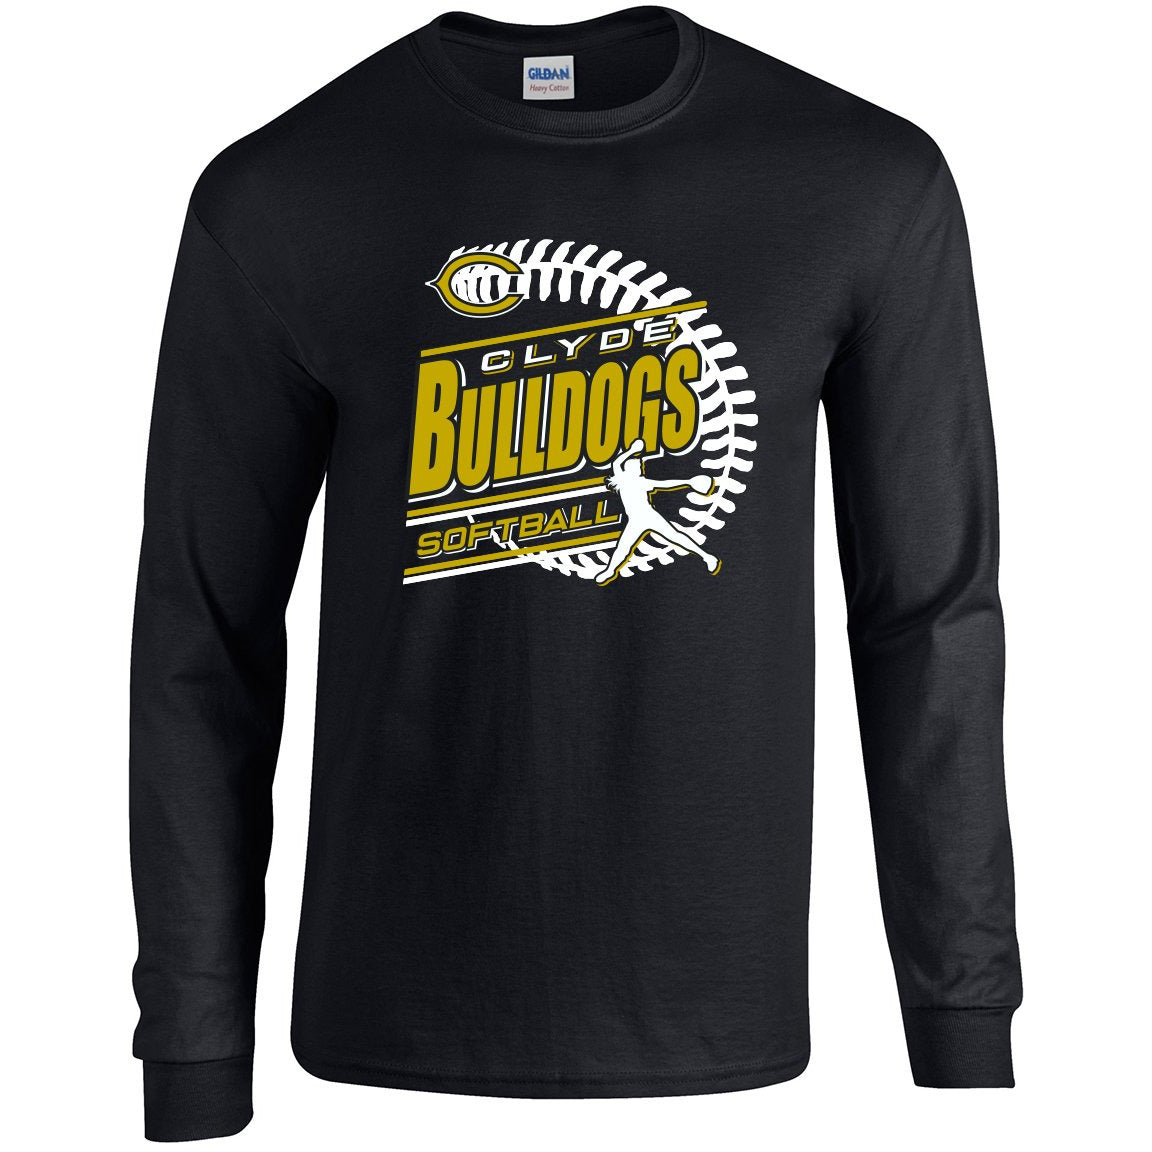 Clyde Bulldogs - Softball Long Sleeve T-Shirt